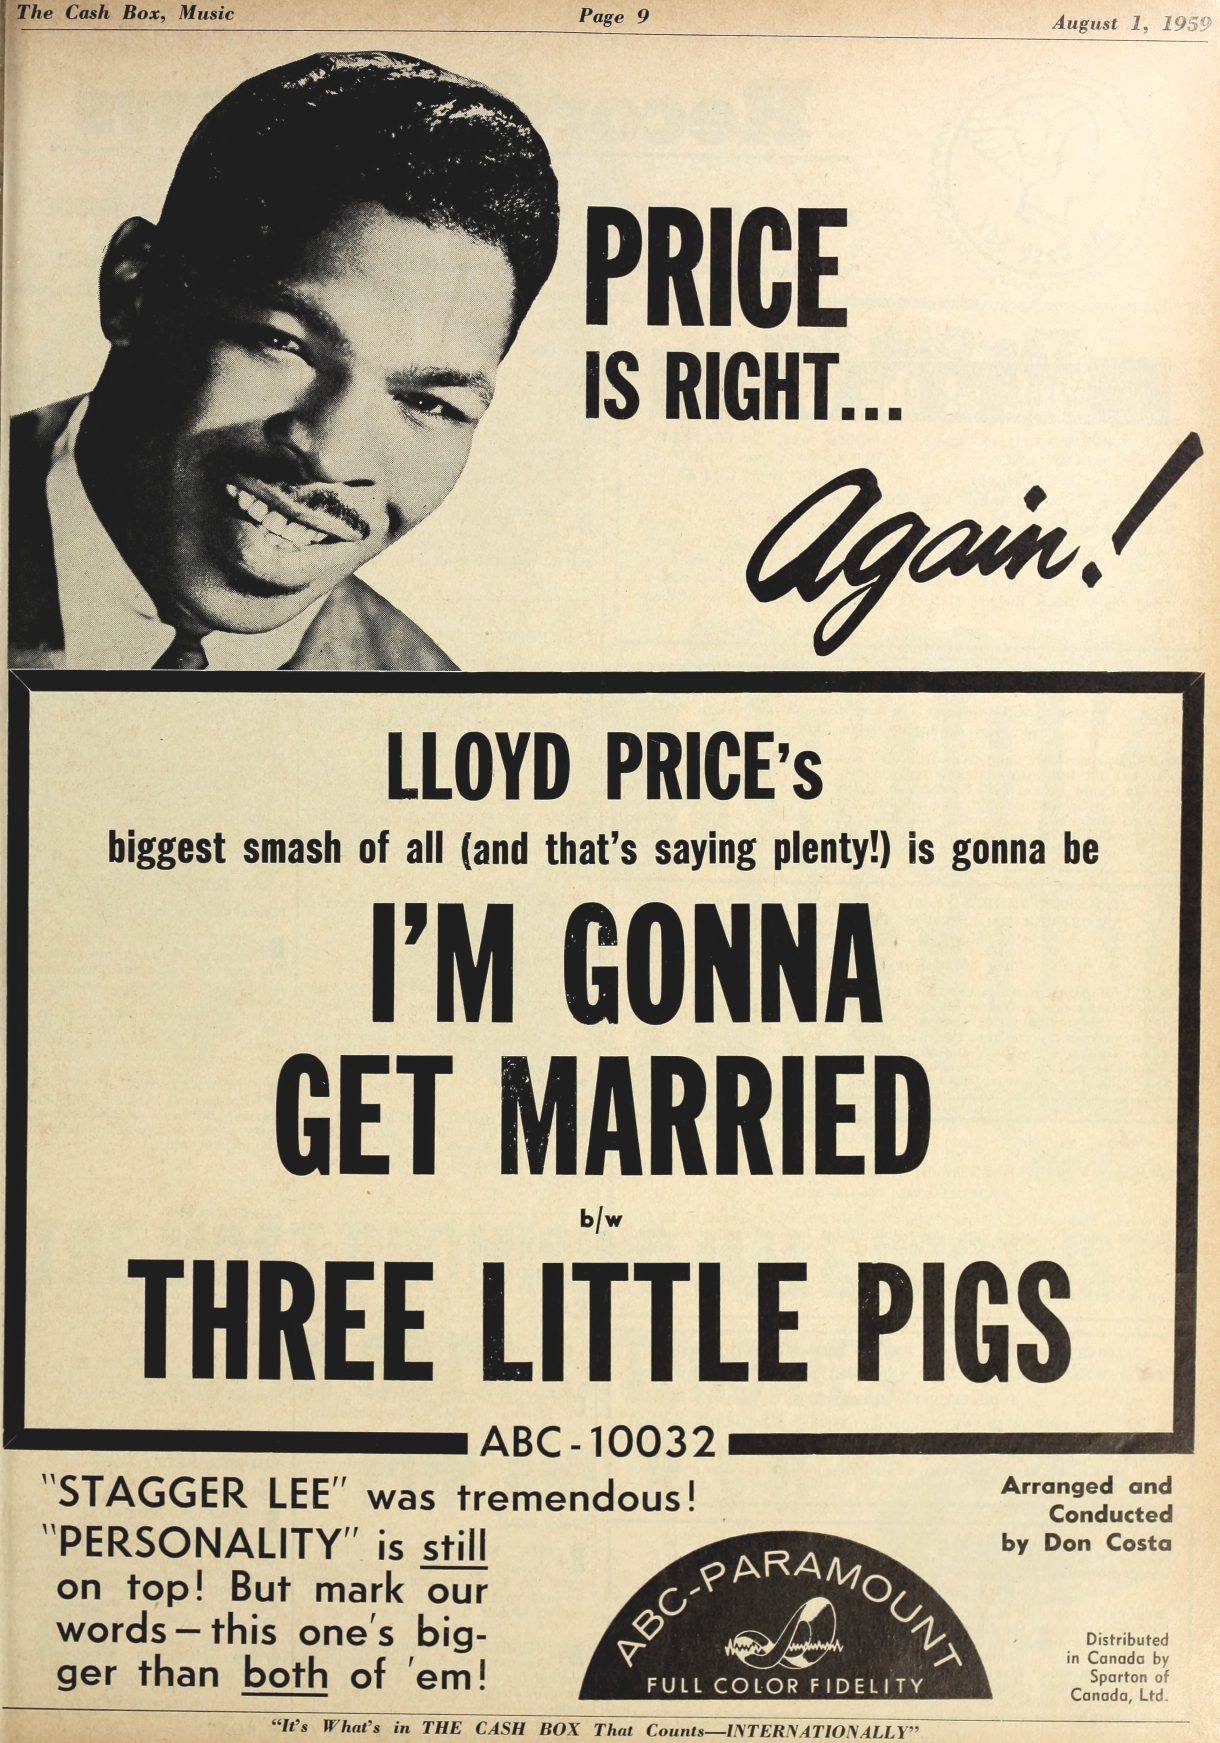 590808_Lloyd Price_I'm Gonna Get Married_2